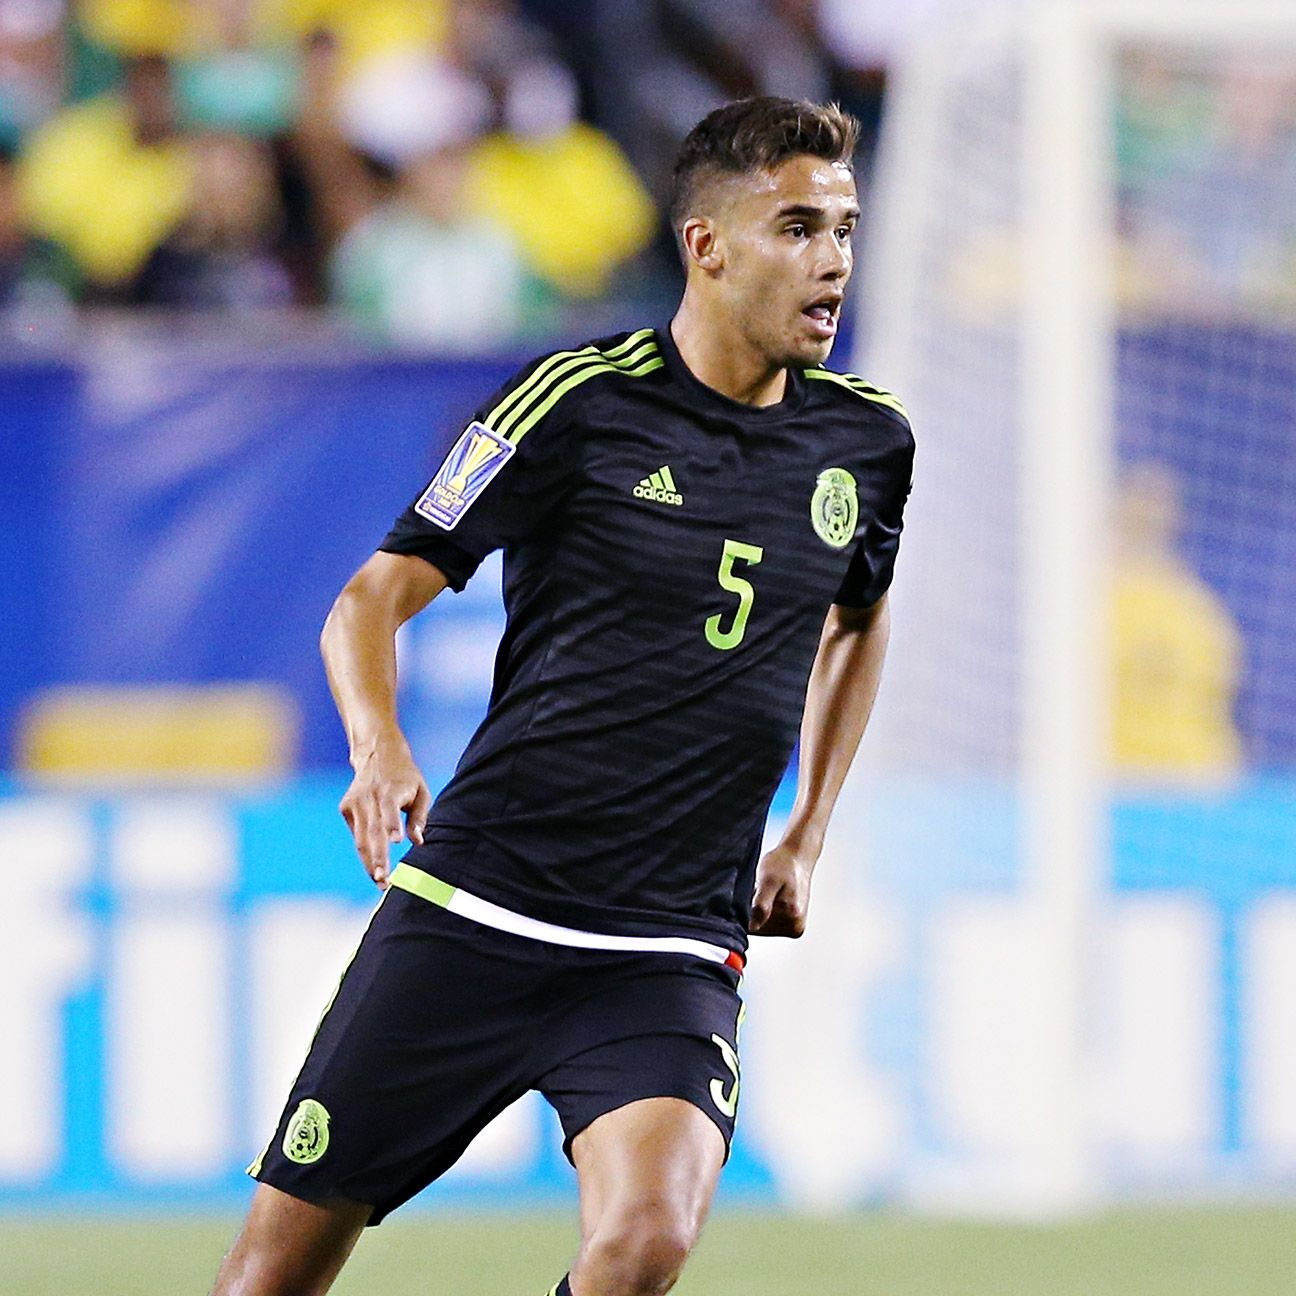 Diego Reyes is looking to kickstart his club career in Spain at Real Sociedad.